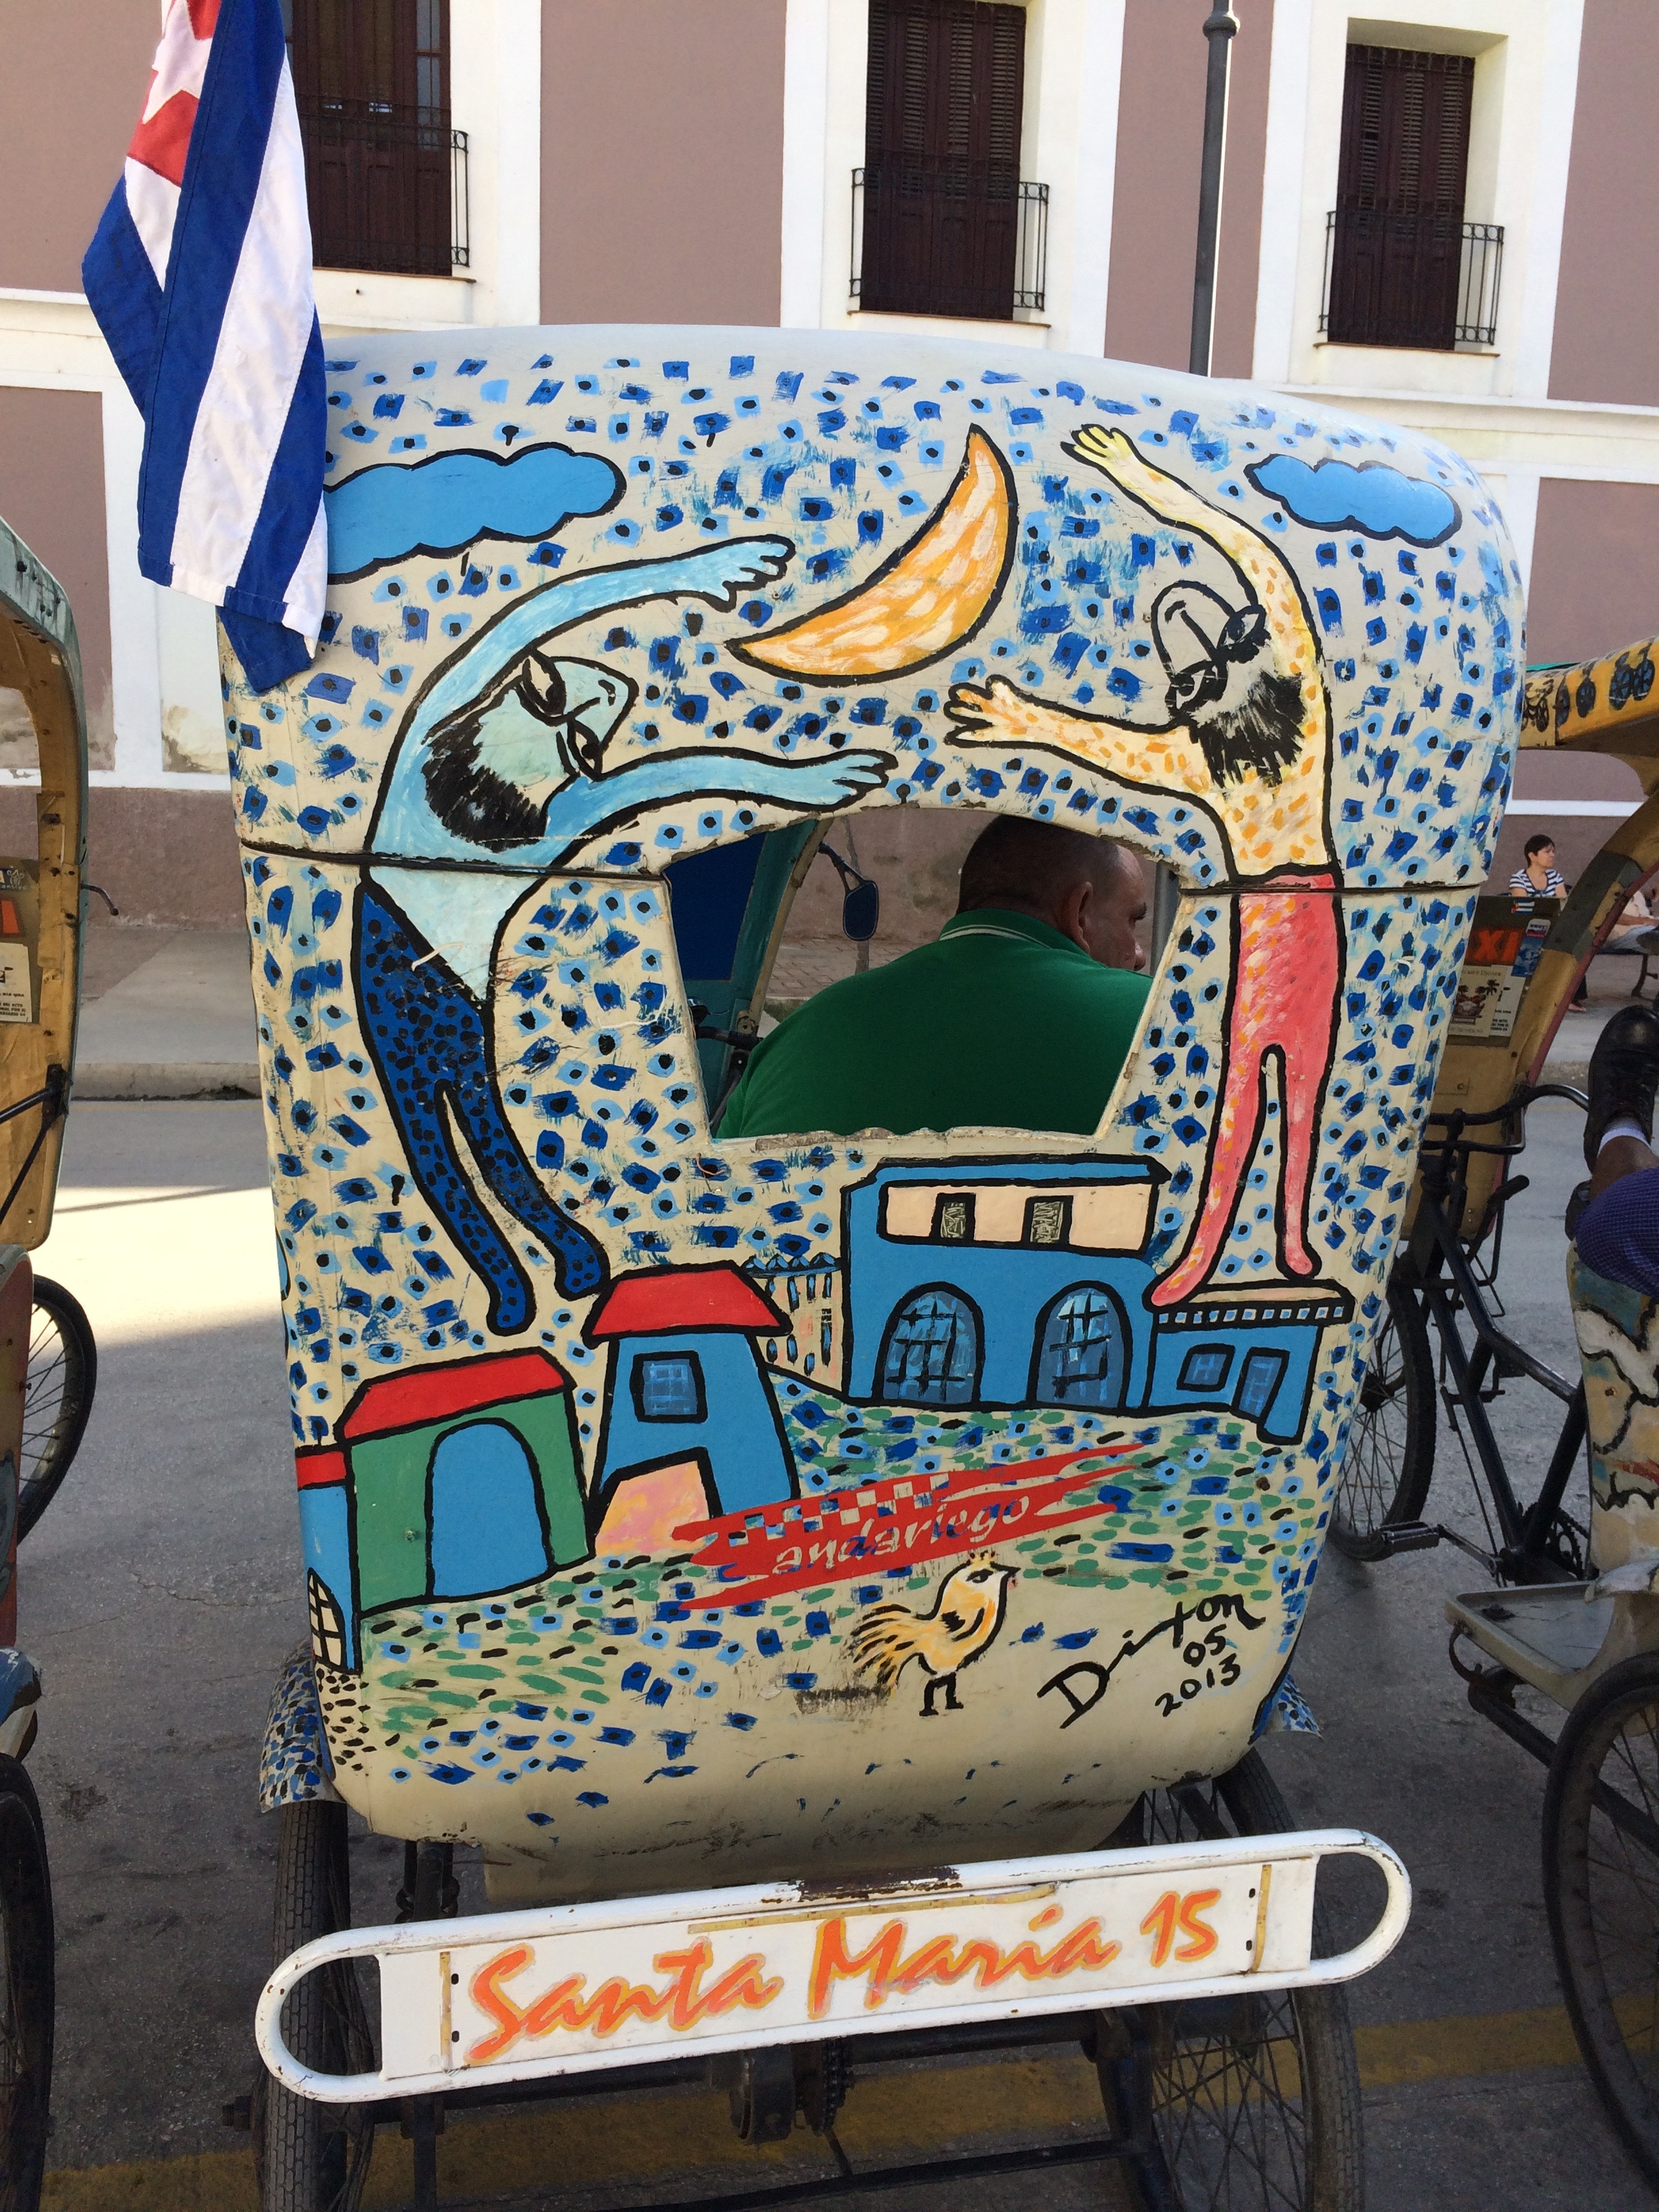 """On our first morning, we were transported in a fleet of """"bici-taxis"""" decorated by local artists to visit several galleries."""